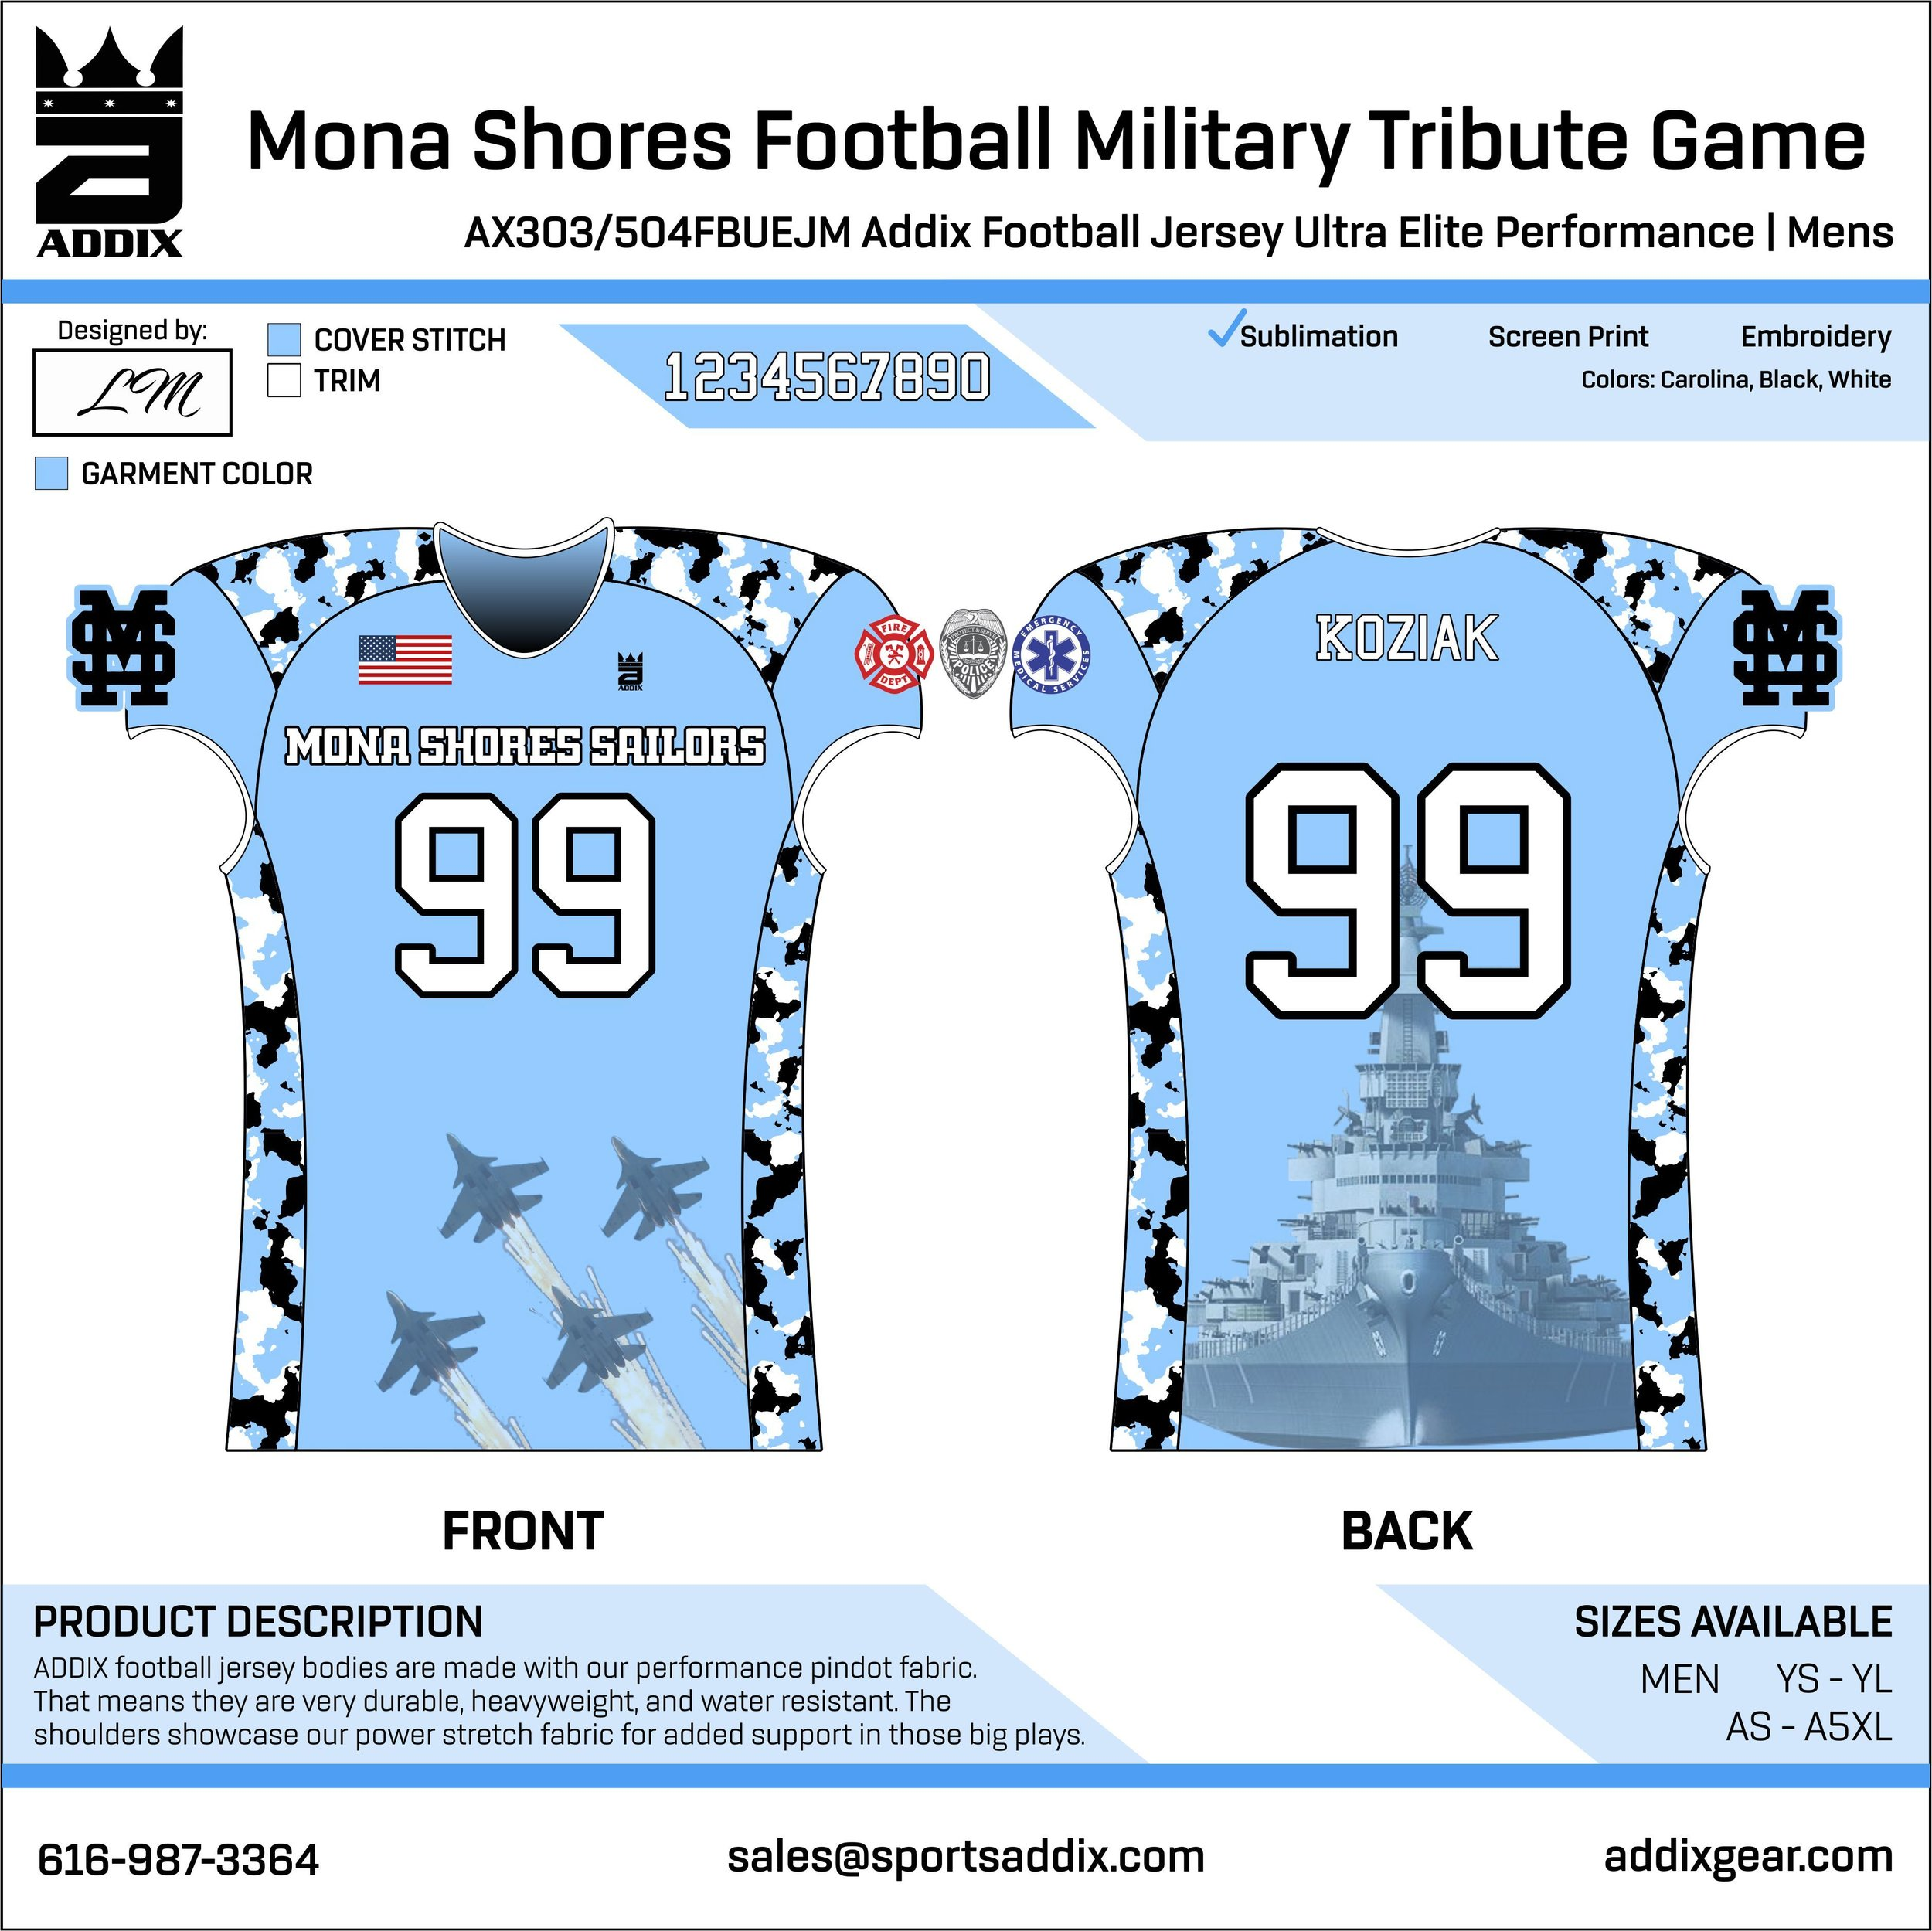 Mona Shores Football Military Tribute Game_2018_5-7_LM_UEP Jersey_.jpg